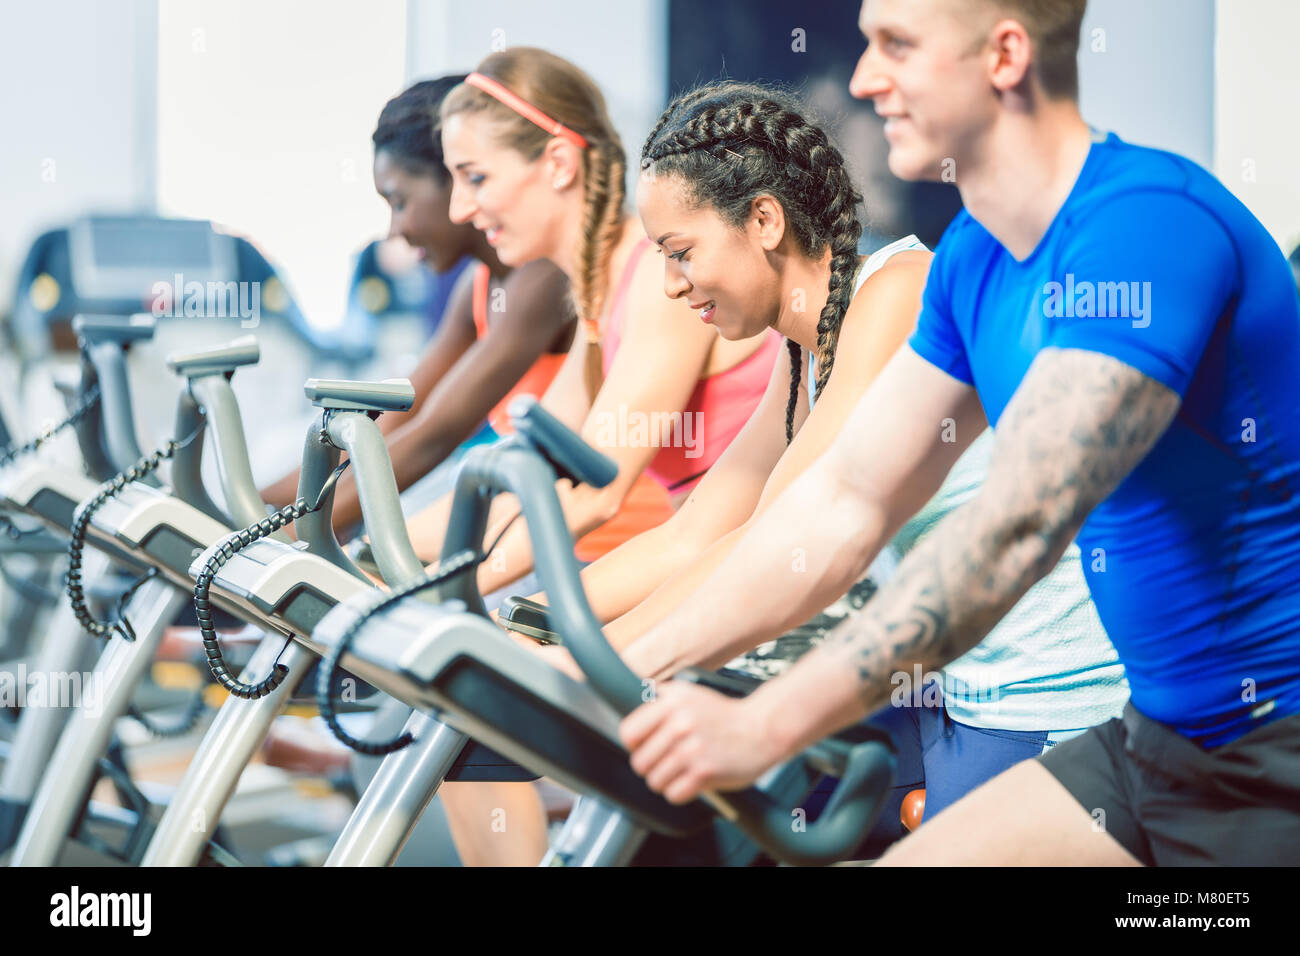 Side view of a beautiful woman smiling while cycling during spinning class - Stock Image